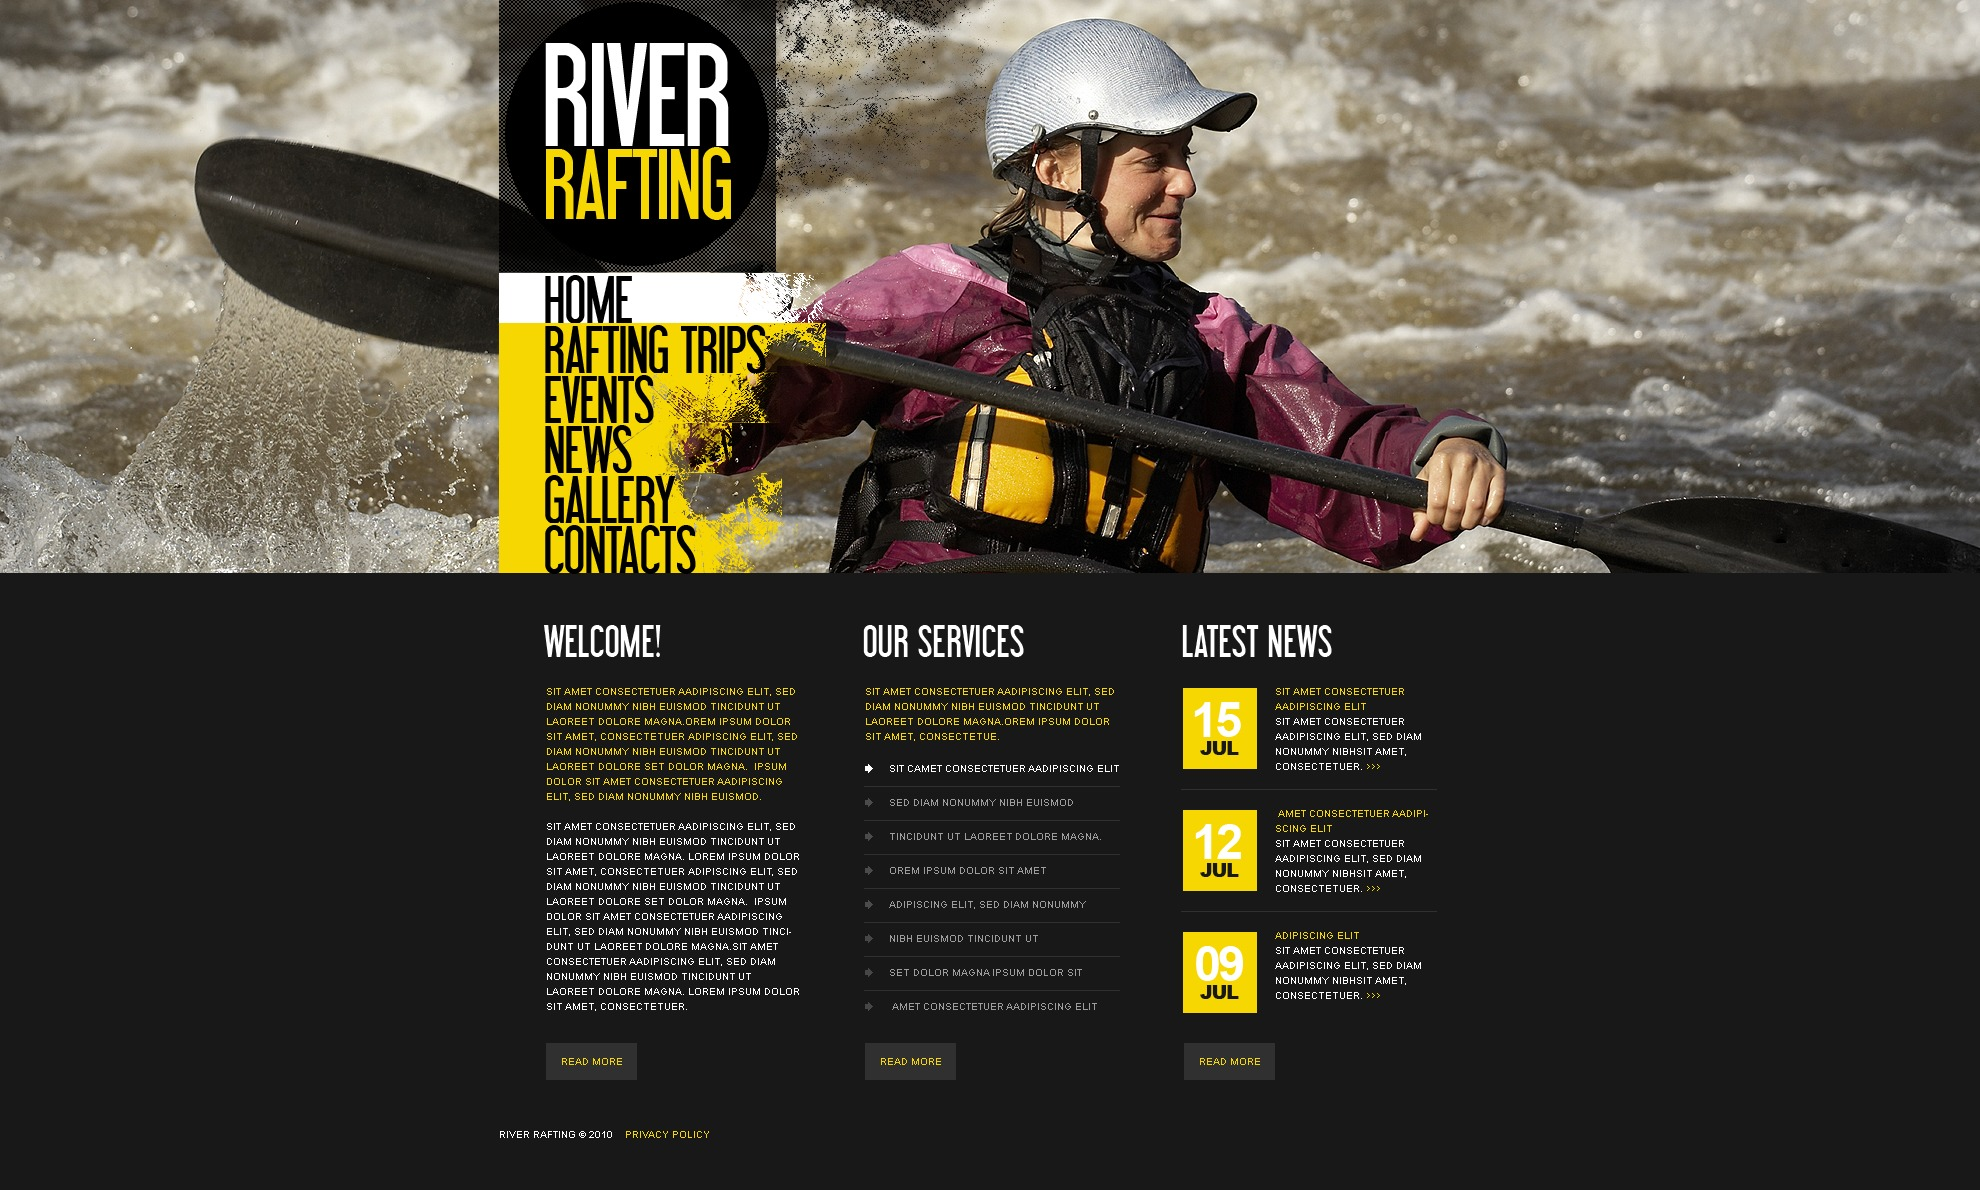 The River Rafting PSD Design 54520, one of the best PSD templates of its kind (sport, flash 8, wide), also known as river rafting PSD template, sport PSD template, boat PSD template, extreme PSD template, adventure PSD template, canoe PSD template, kayak PSD template, water PSD template, paddle and related with river rafting, sport, boat, extreme, adventure, canoe, kayak, water, paddle, etc.